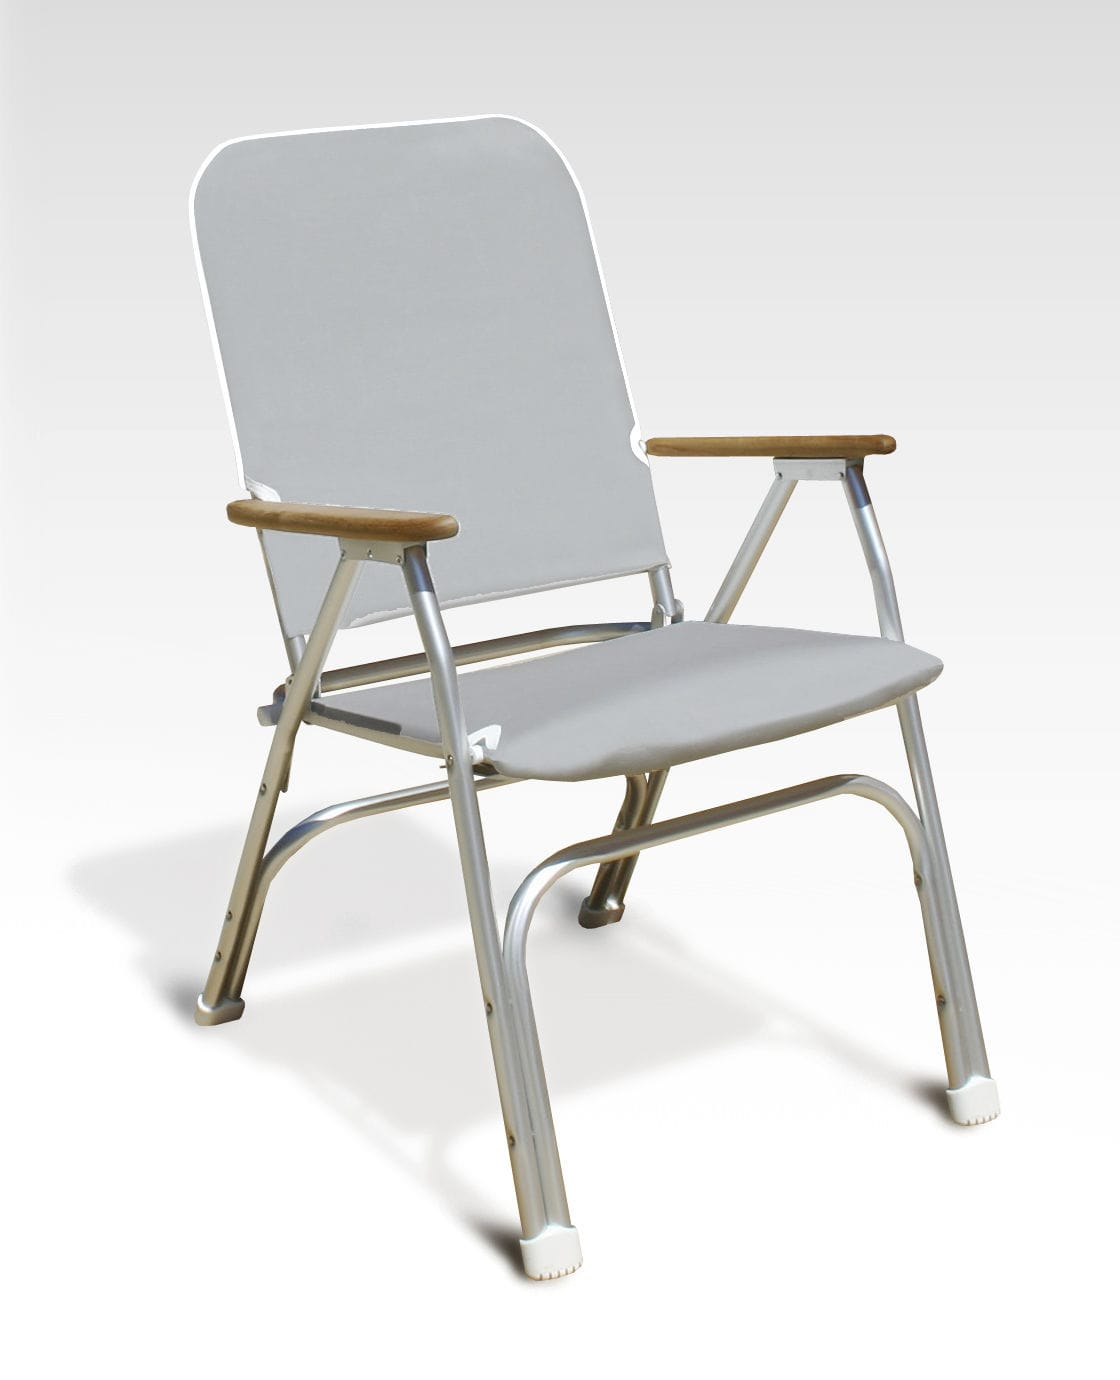 folding chairs for boats tranquil ease lift chair parts standard boat yachts with armrests v100g